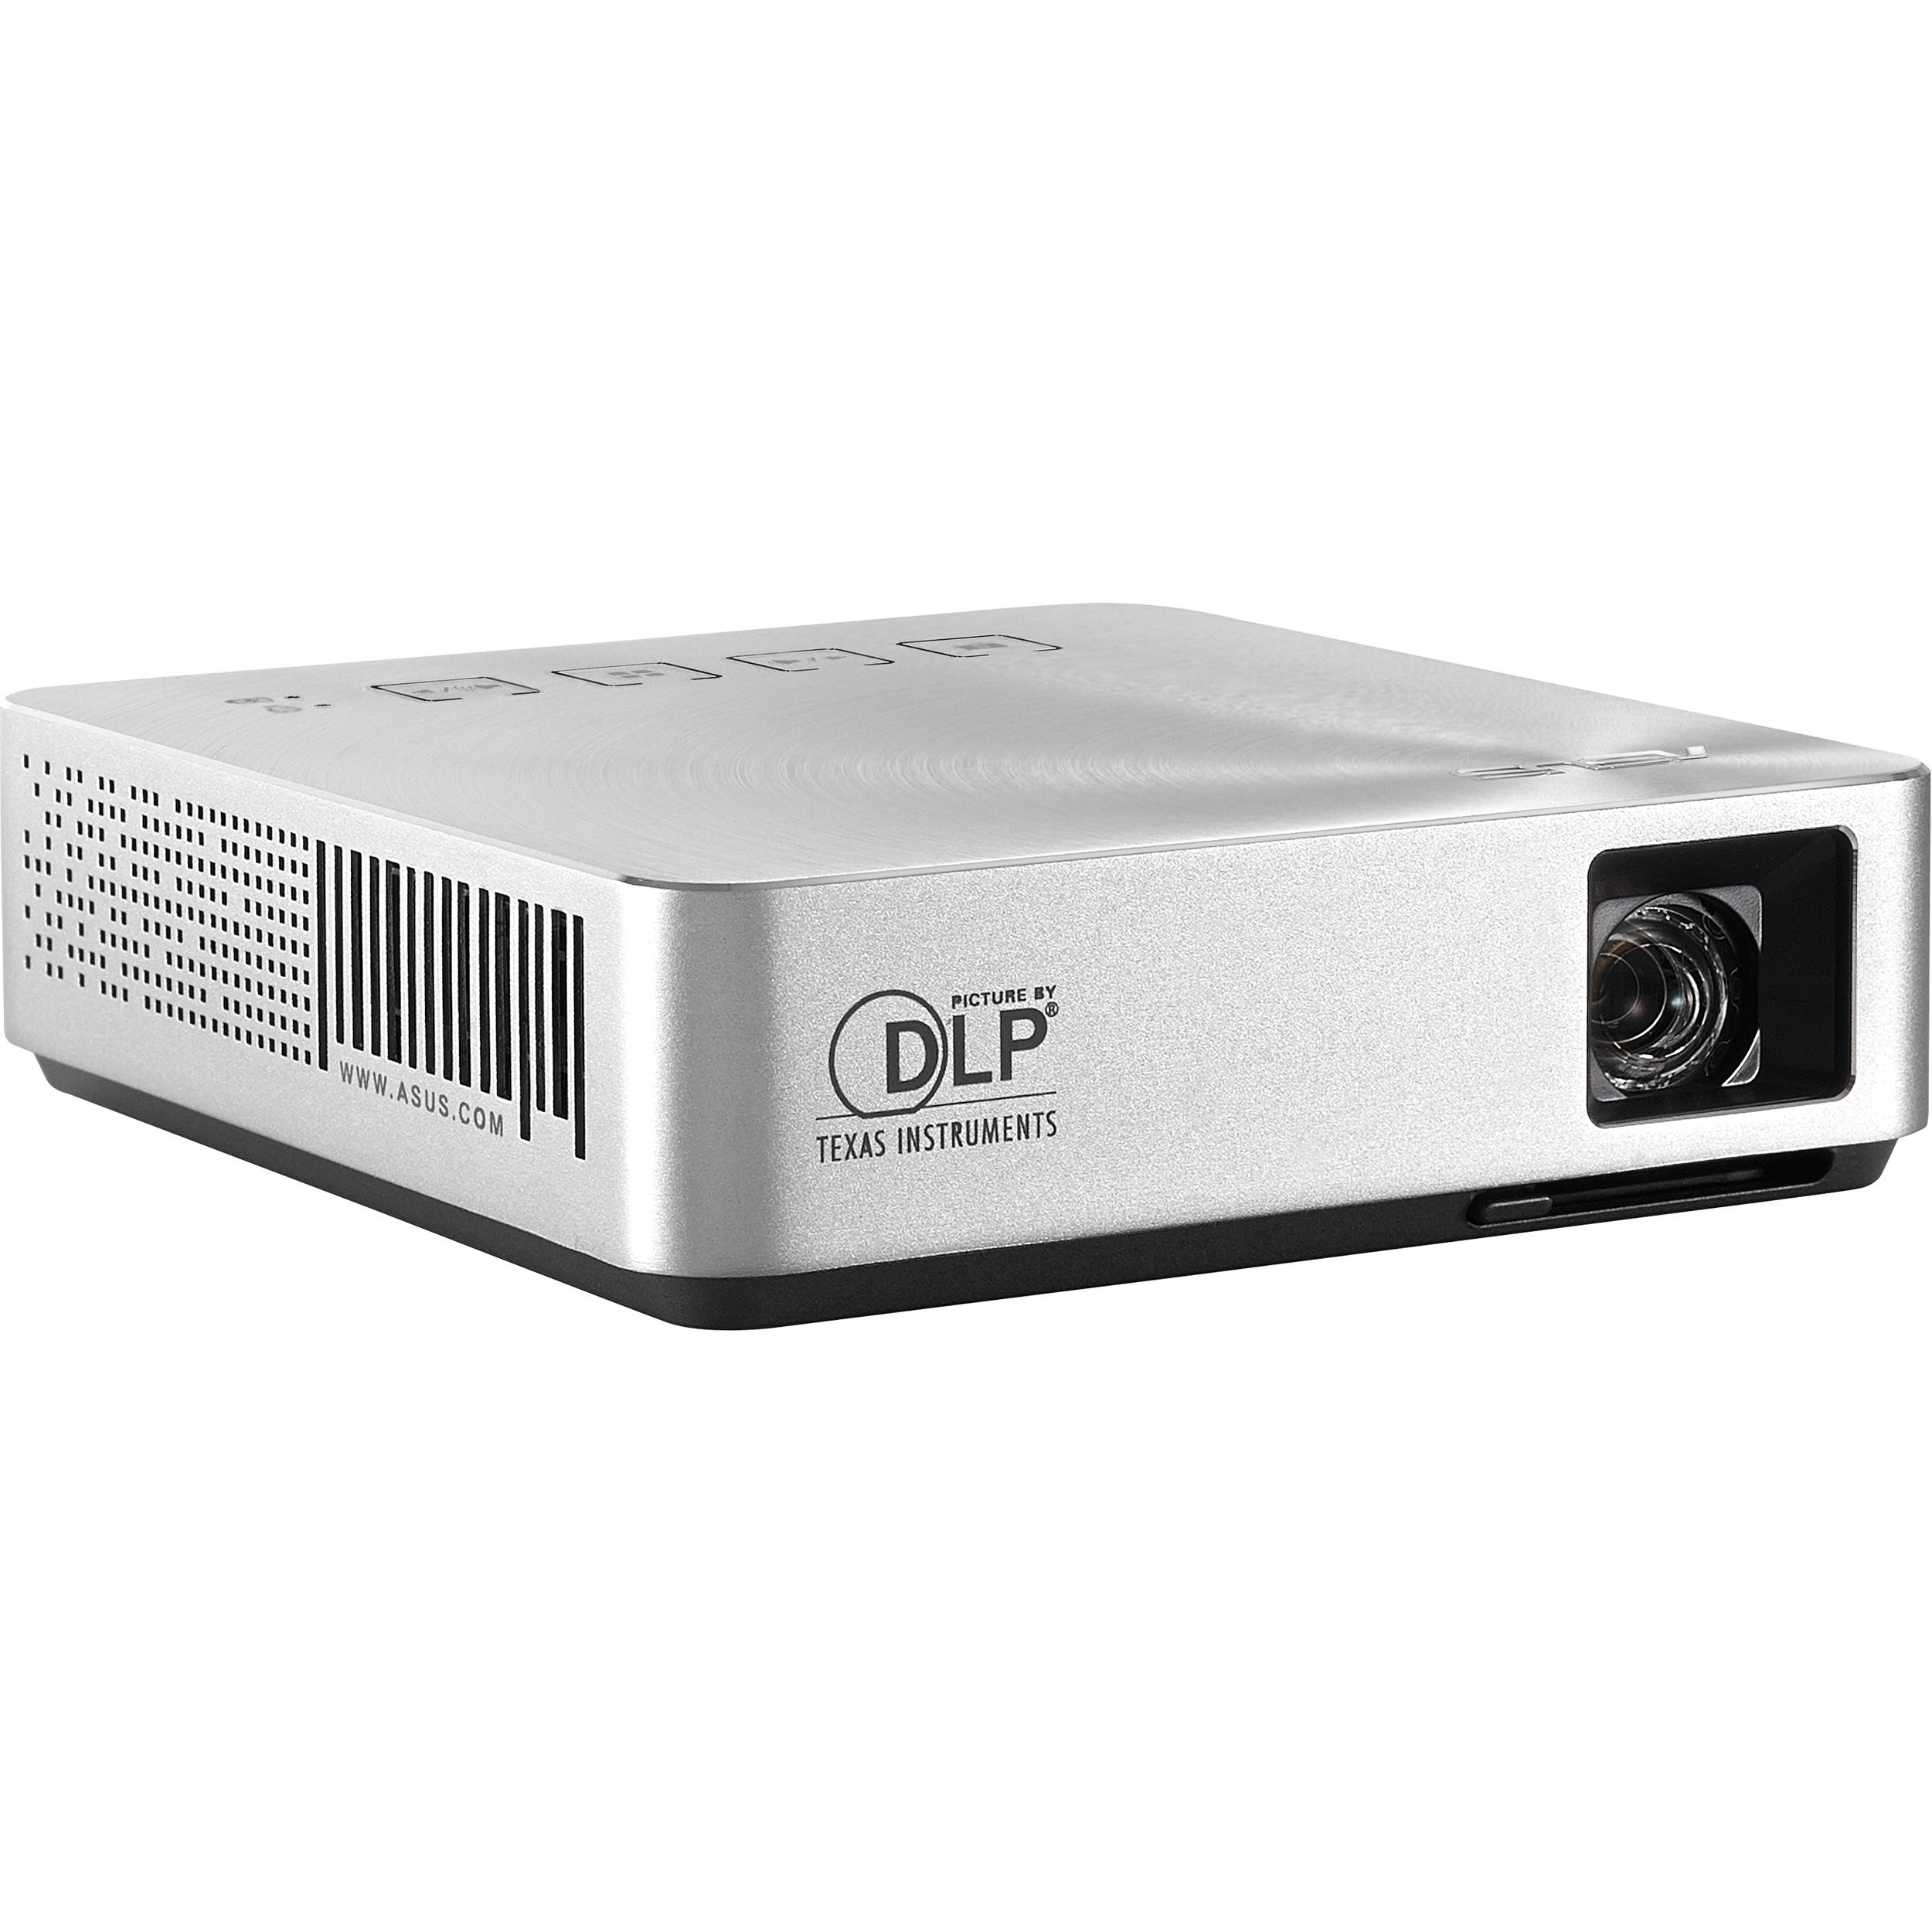 Asus s1 led pocket projector 90lj0060 b00140 b h photo video for Dlp pocket projector